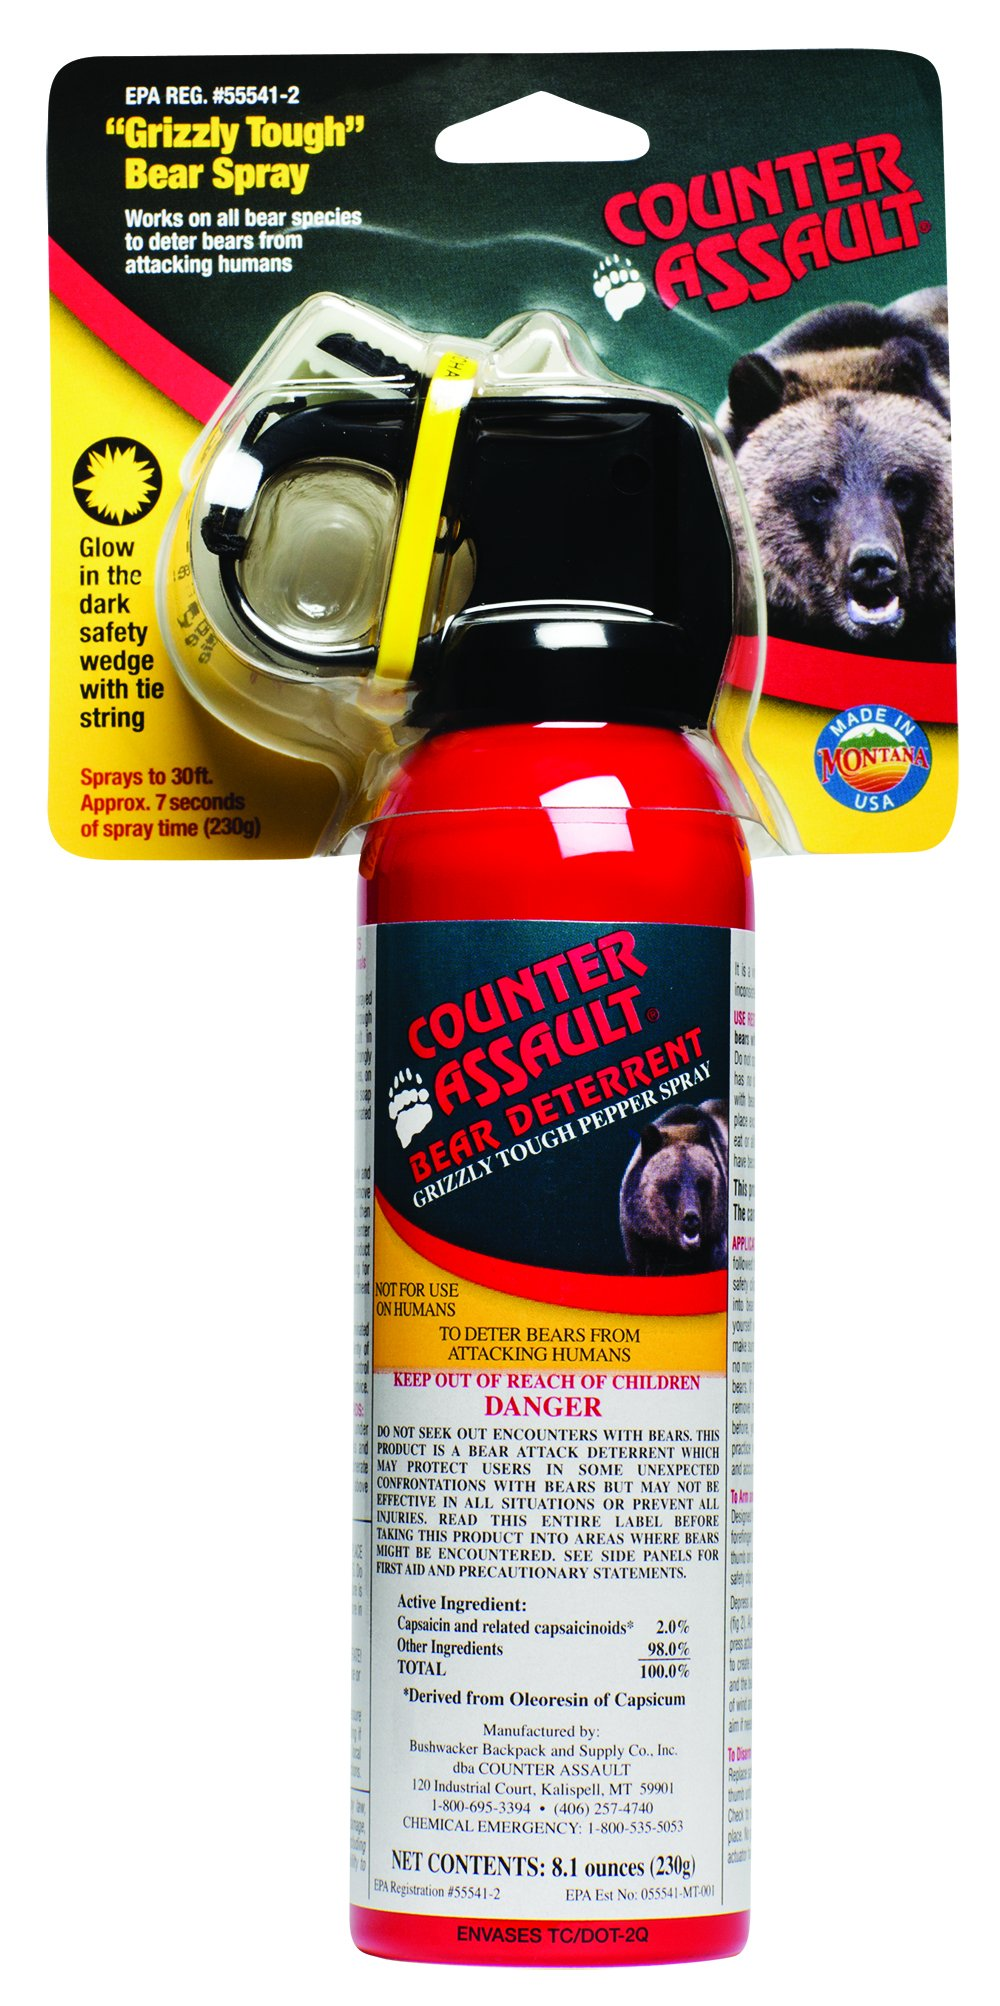 Bear Deterrent 8.1 oz Net Content (230g) by Counter Assault